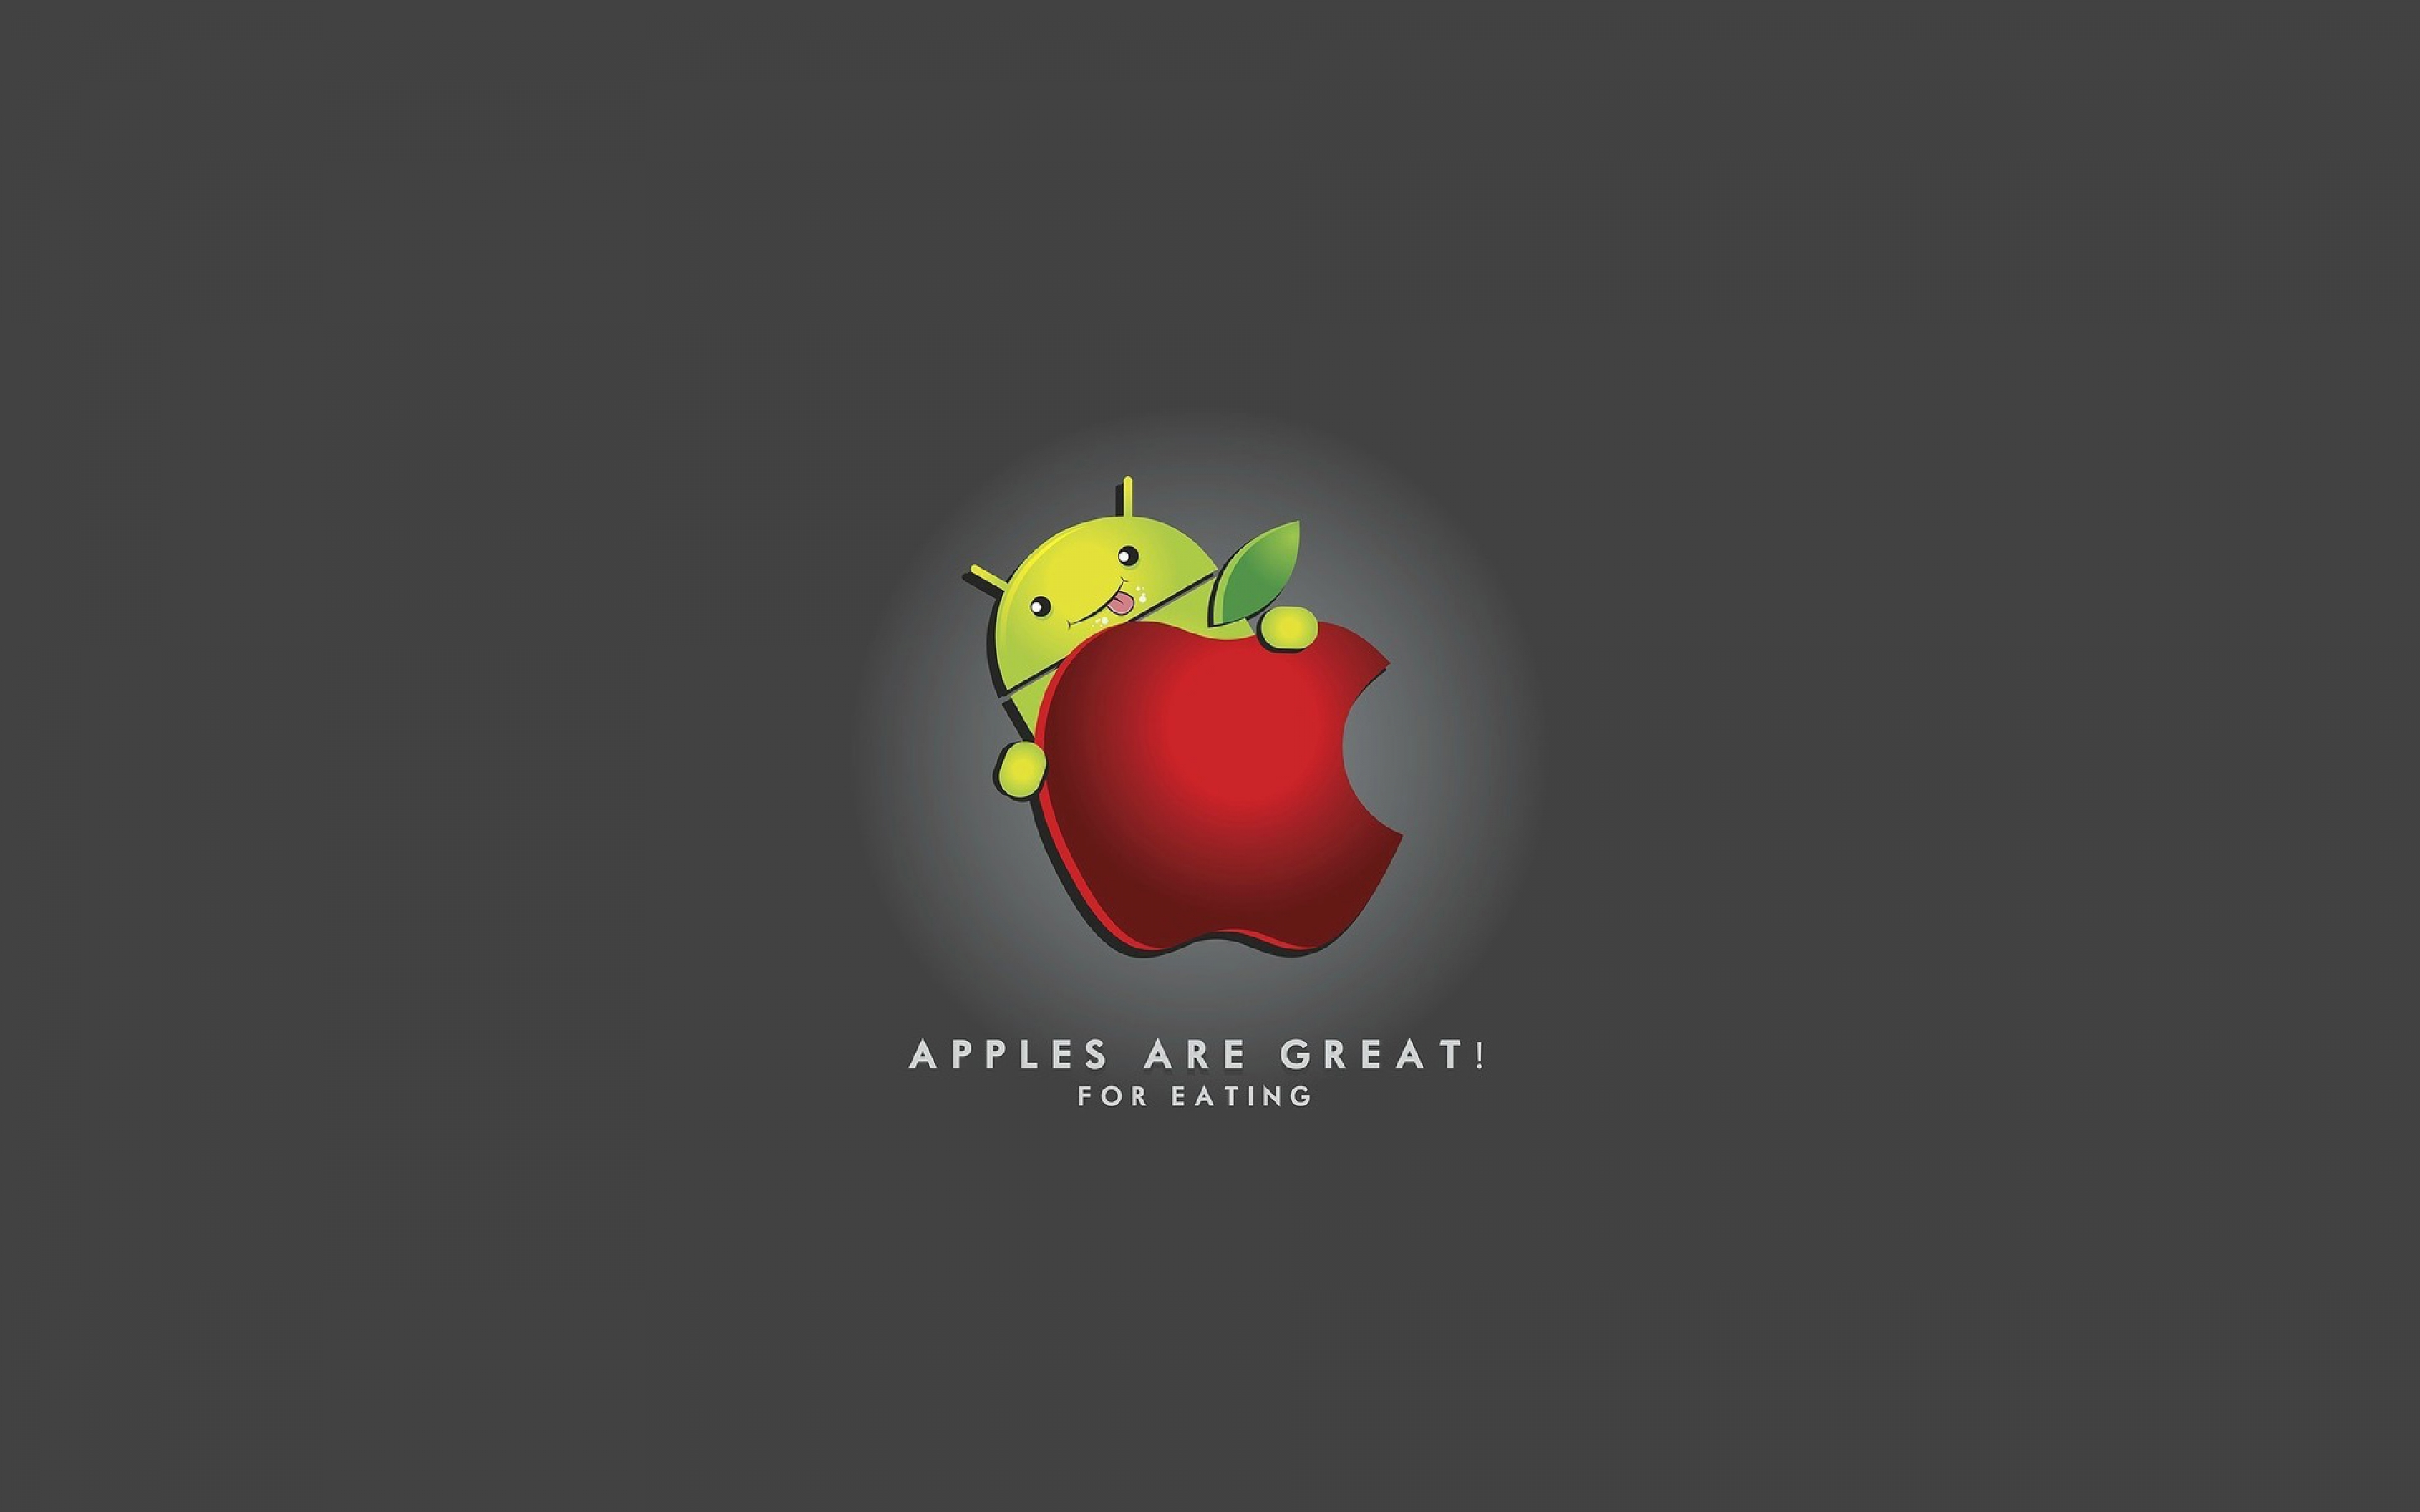 Android And Apple Wallpaper 2880x1800 3964 Wallpaperup